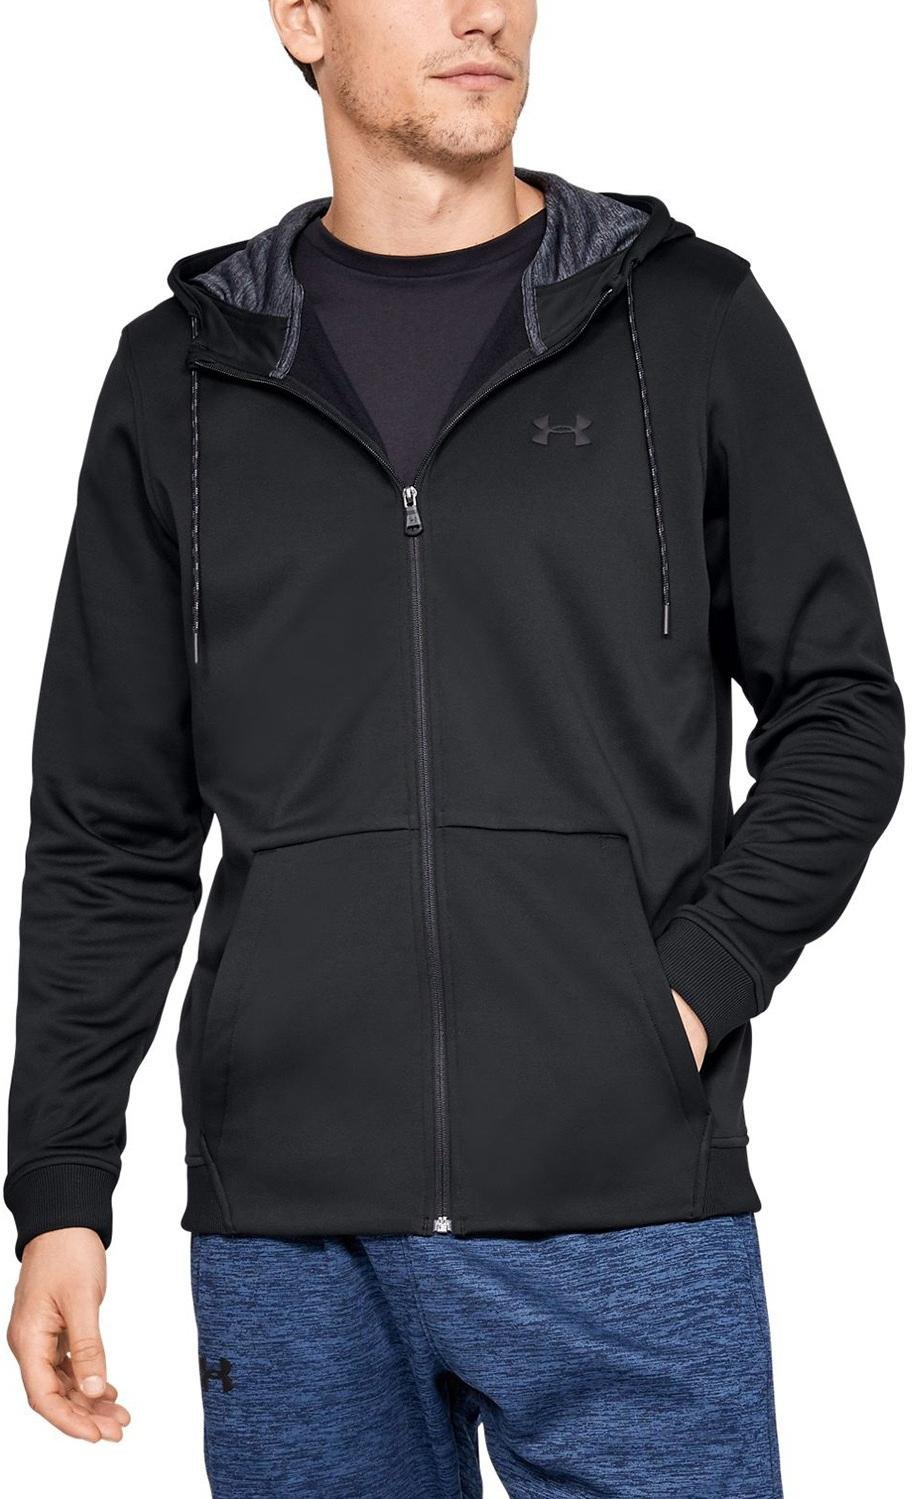 Pánská mikina Under Armour Fleece Full zip